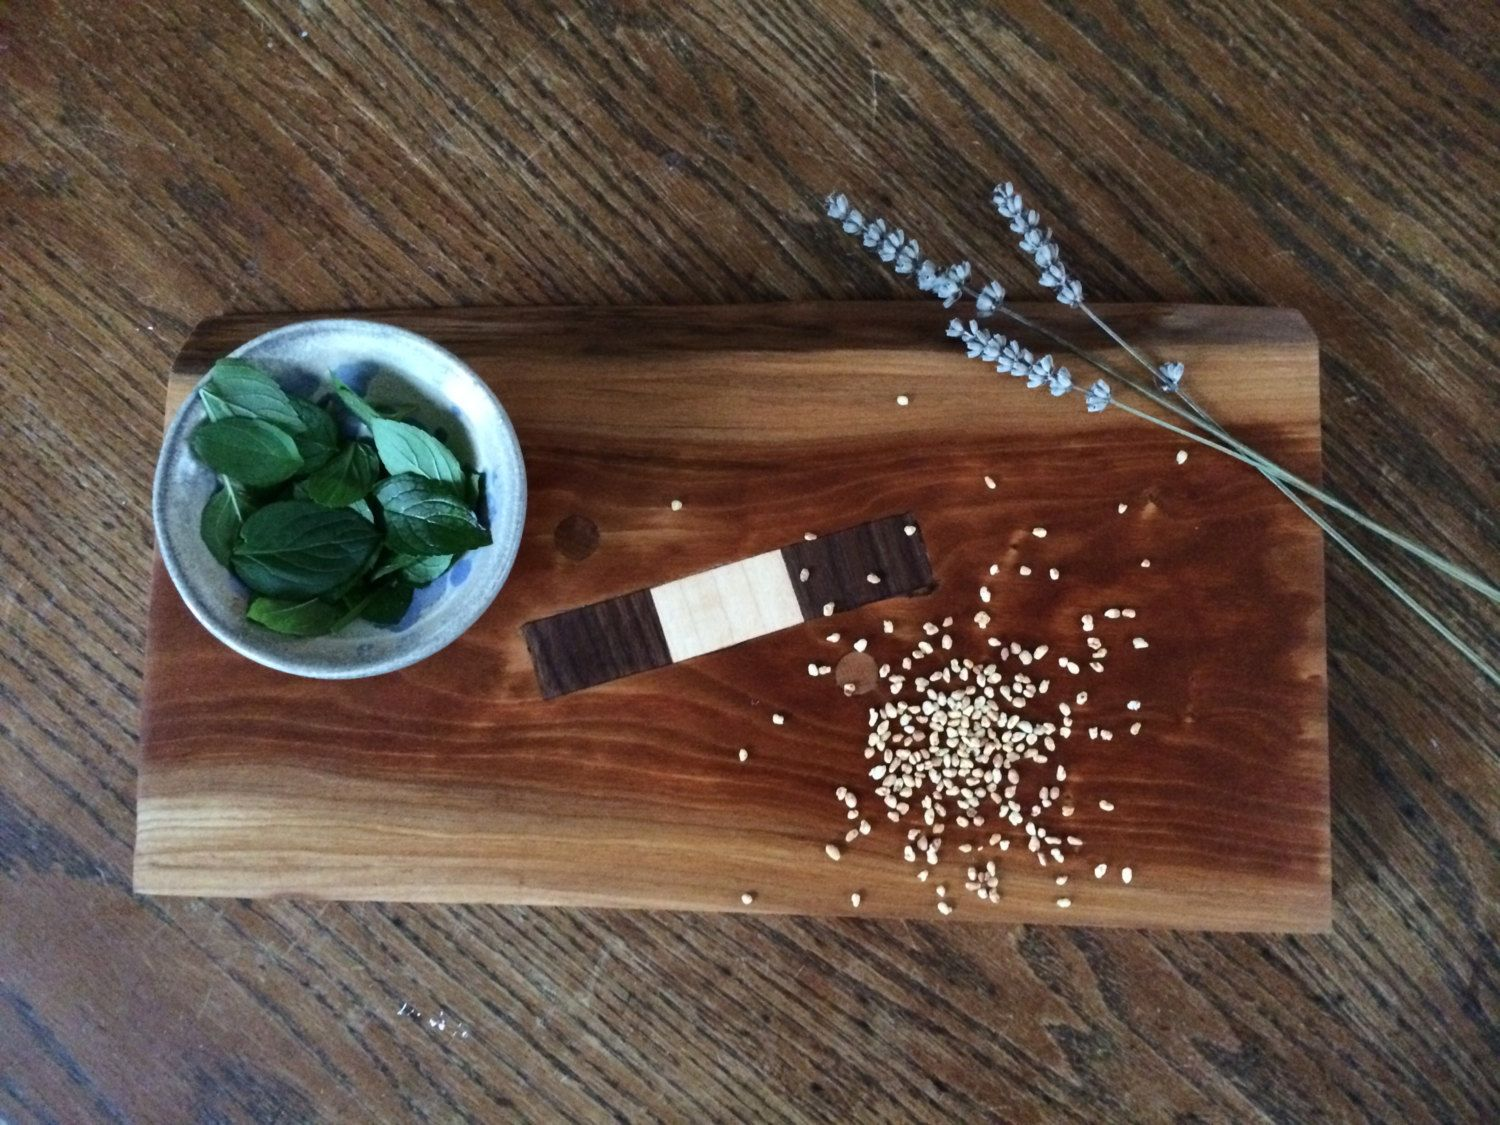 Live Edge Cherry Cutting Board with Maple and Walnut Inlay by SincerelyJack on Etsy